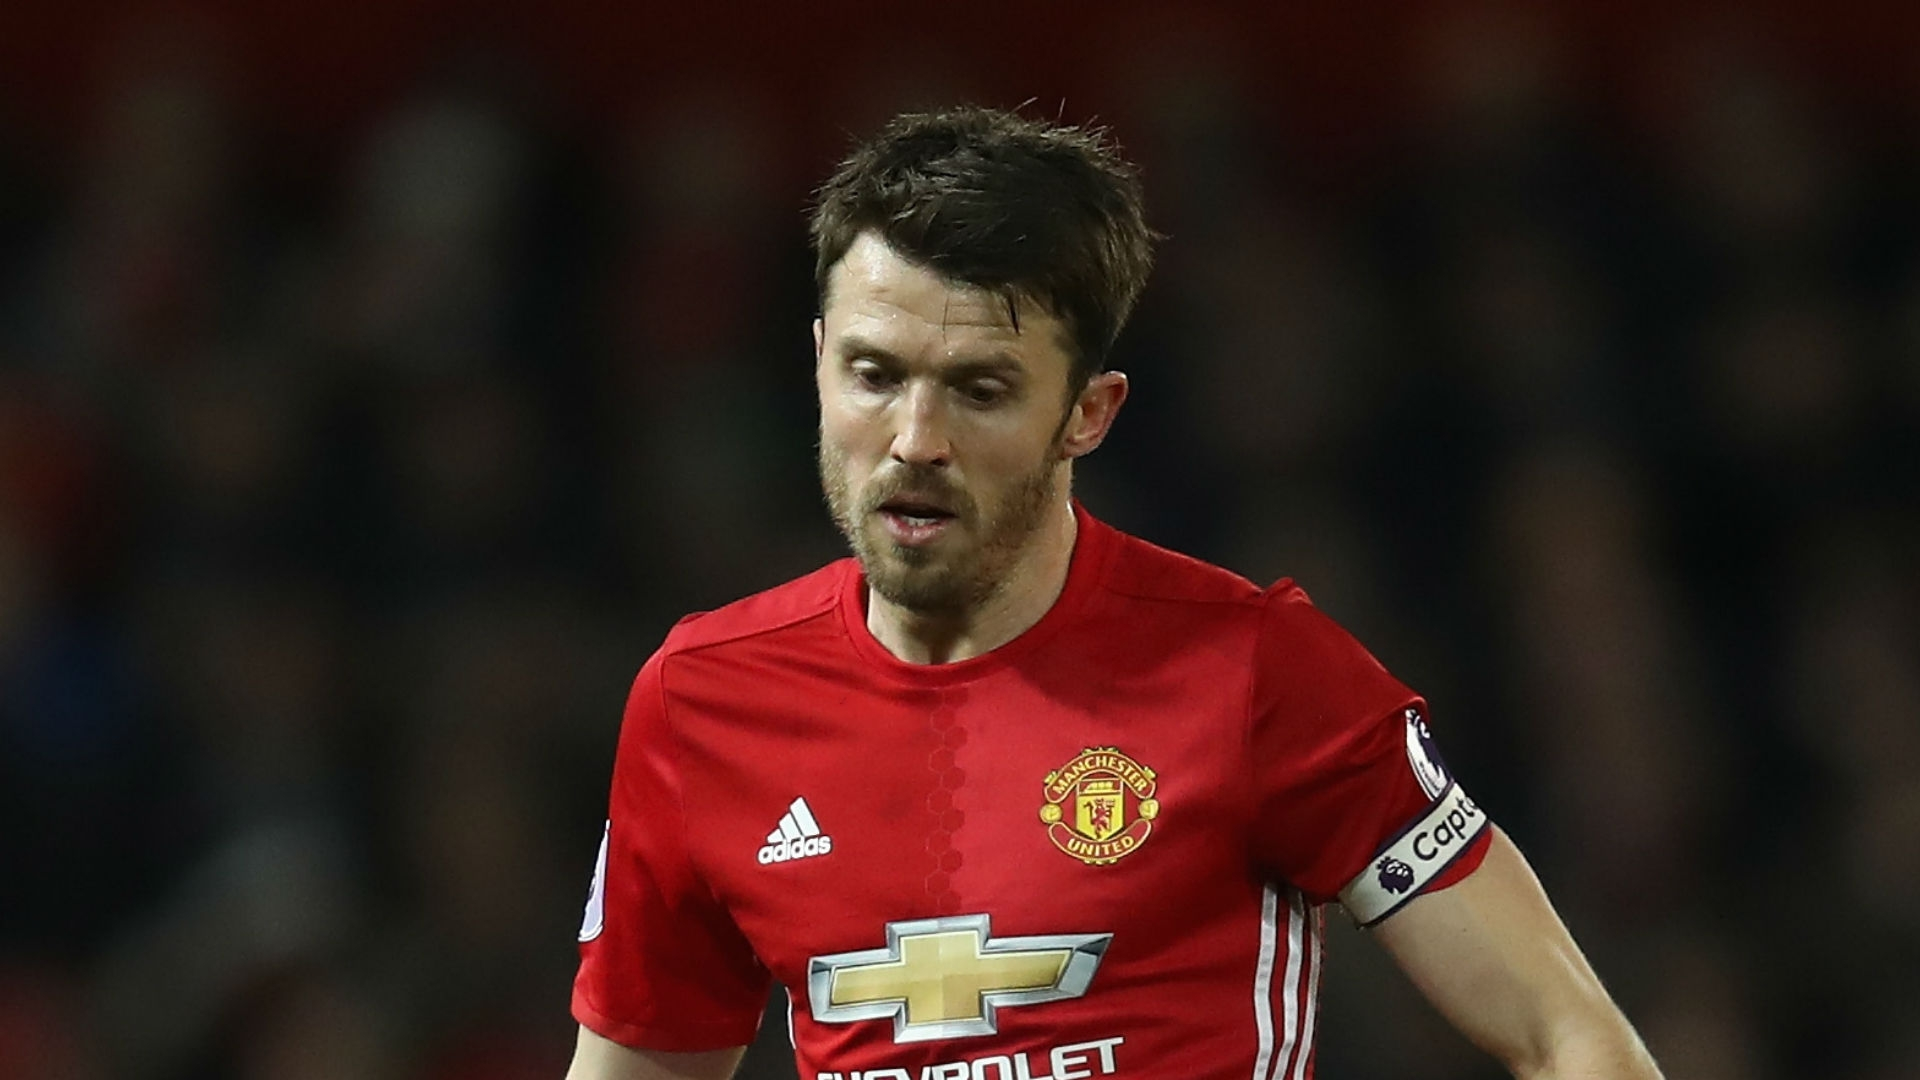 Alex Ferguson will coach Carrick and former United stars in the game testimonial